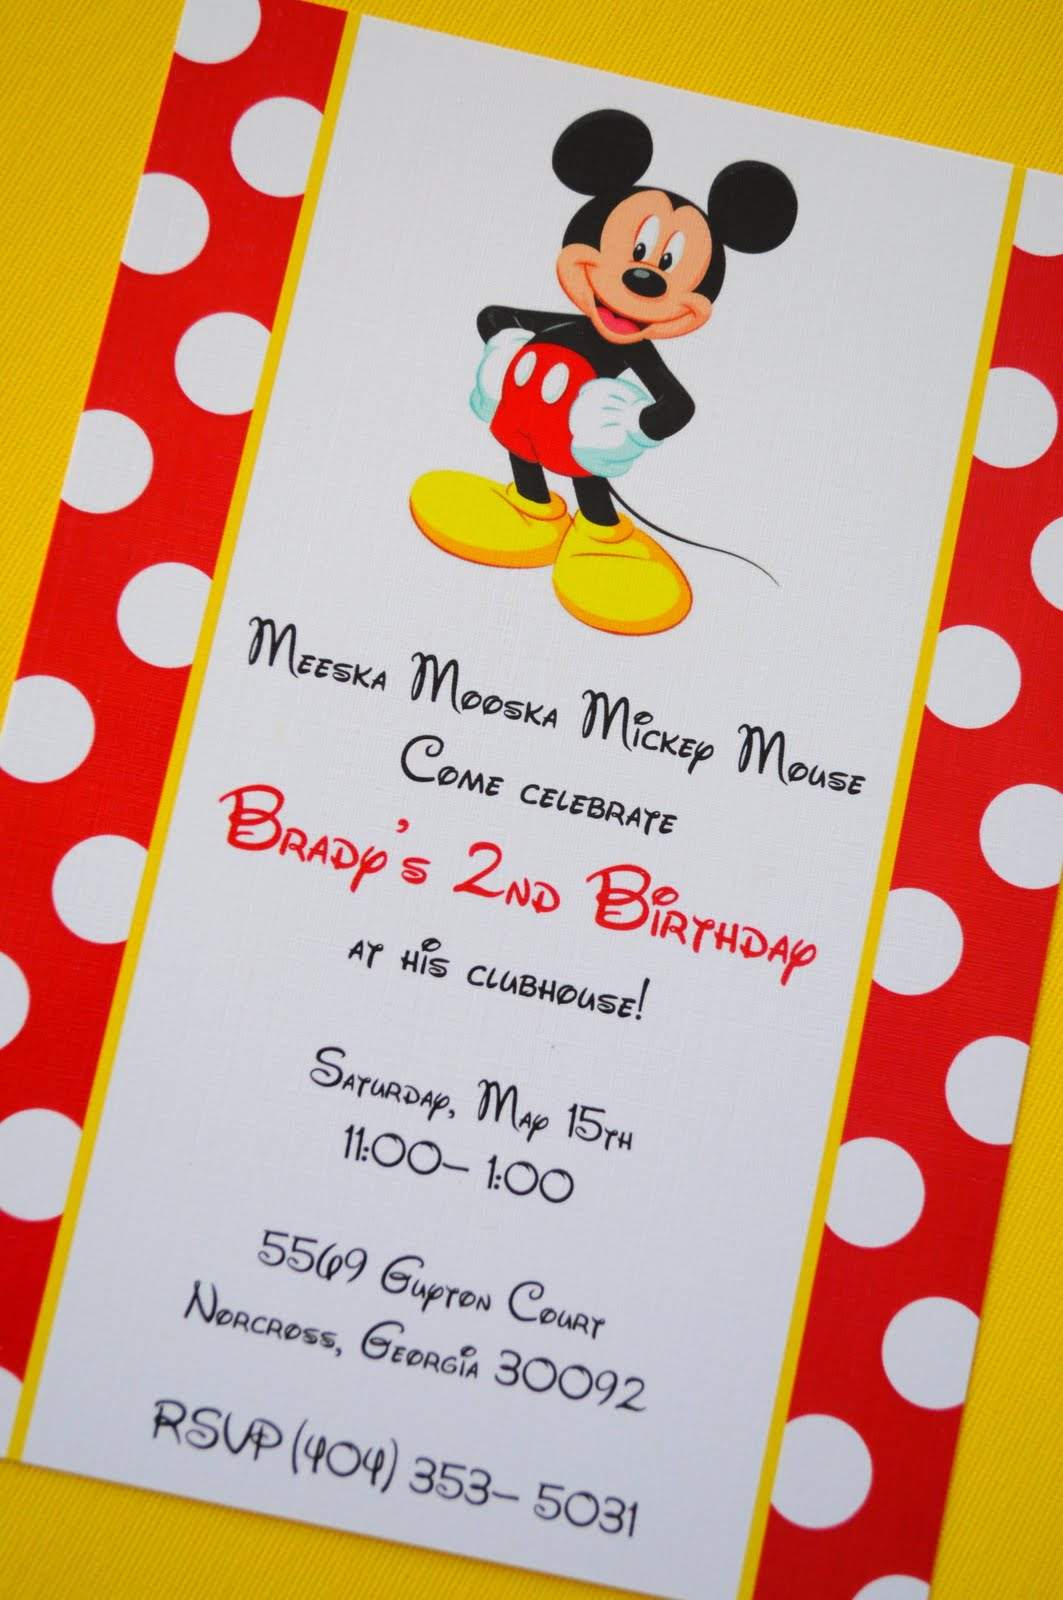 Brilliant Mickey Mouse Birthday Party Invitation Wording 1063 x 1600 · 145 kB · jpeg